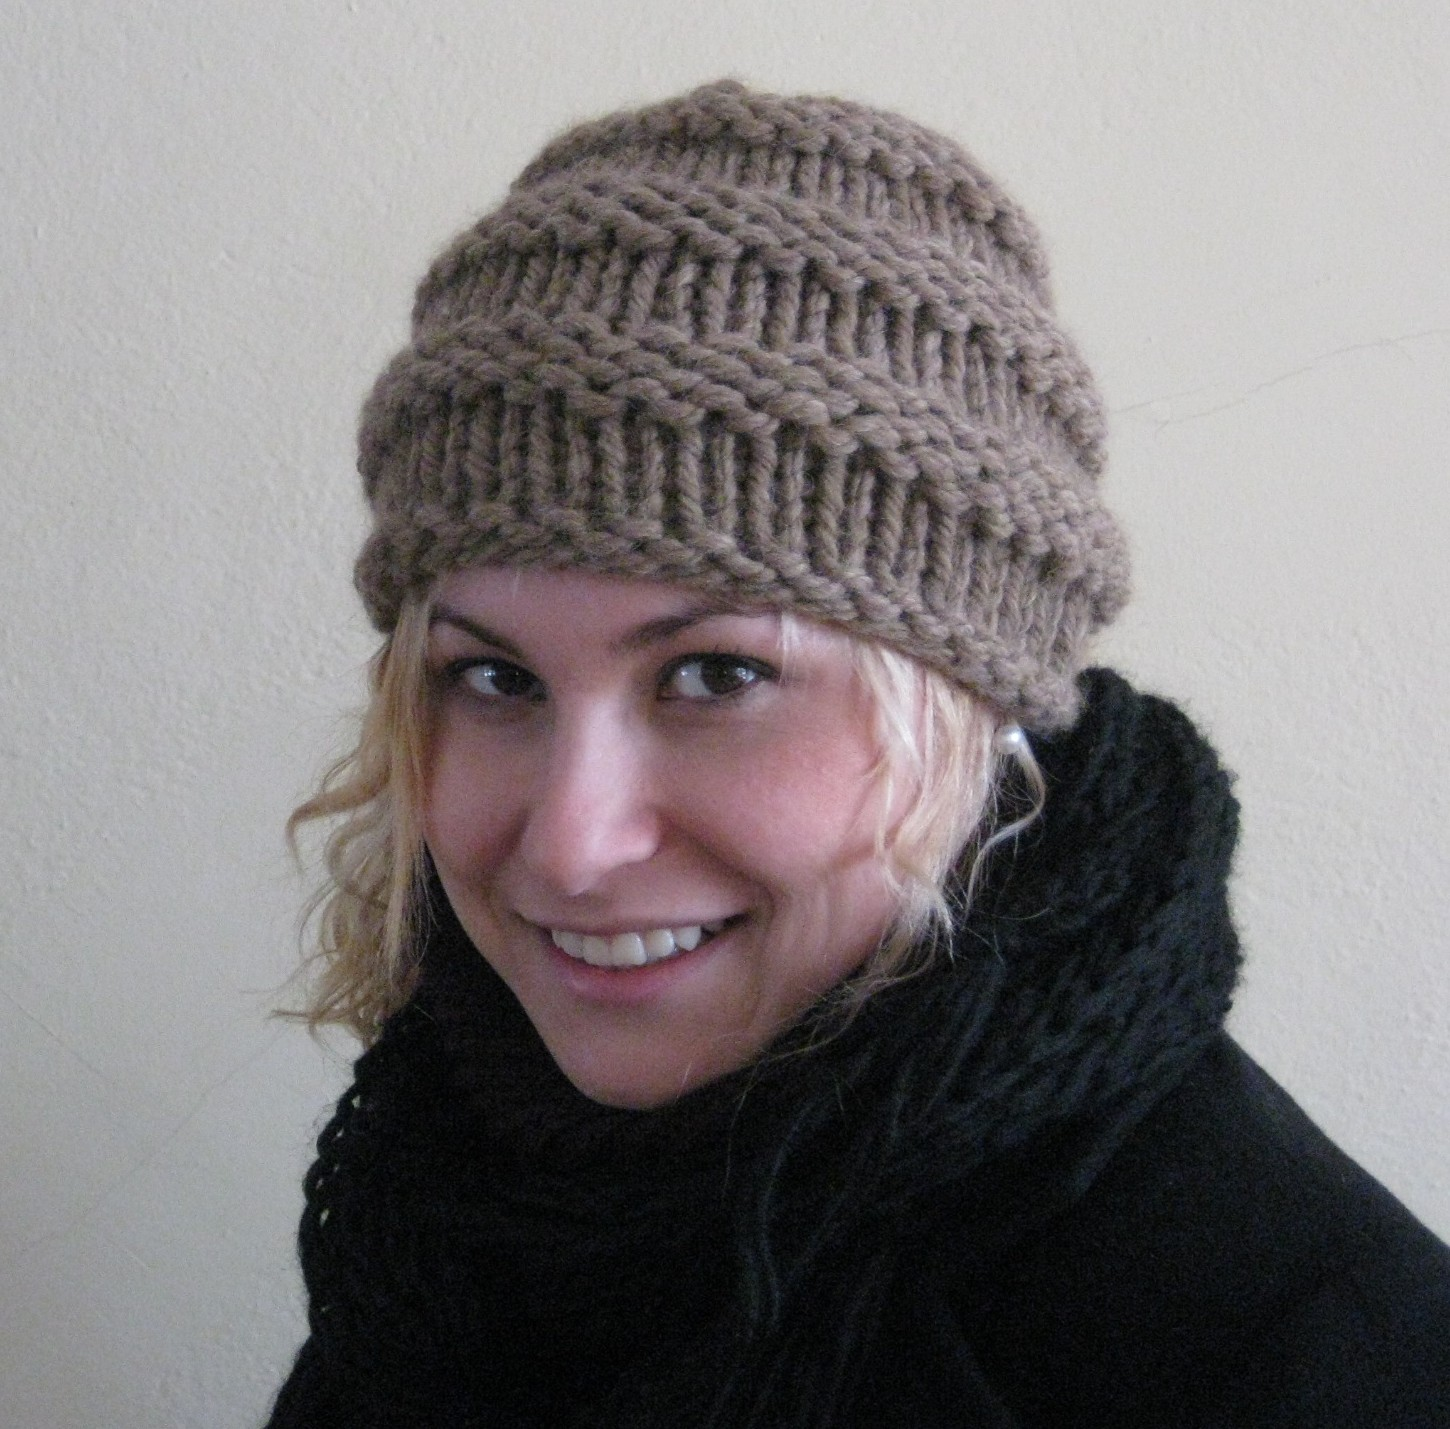 Simple Hat Knitting Pattern In The Round : the Yarn Princess: The New Quick and Easy Ribbed Hat